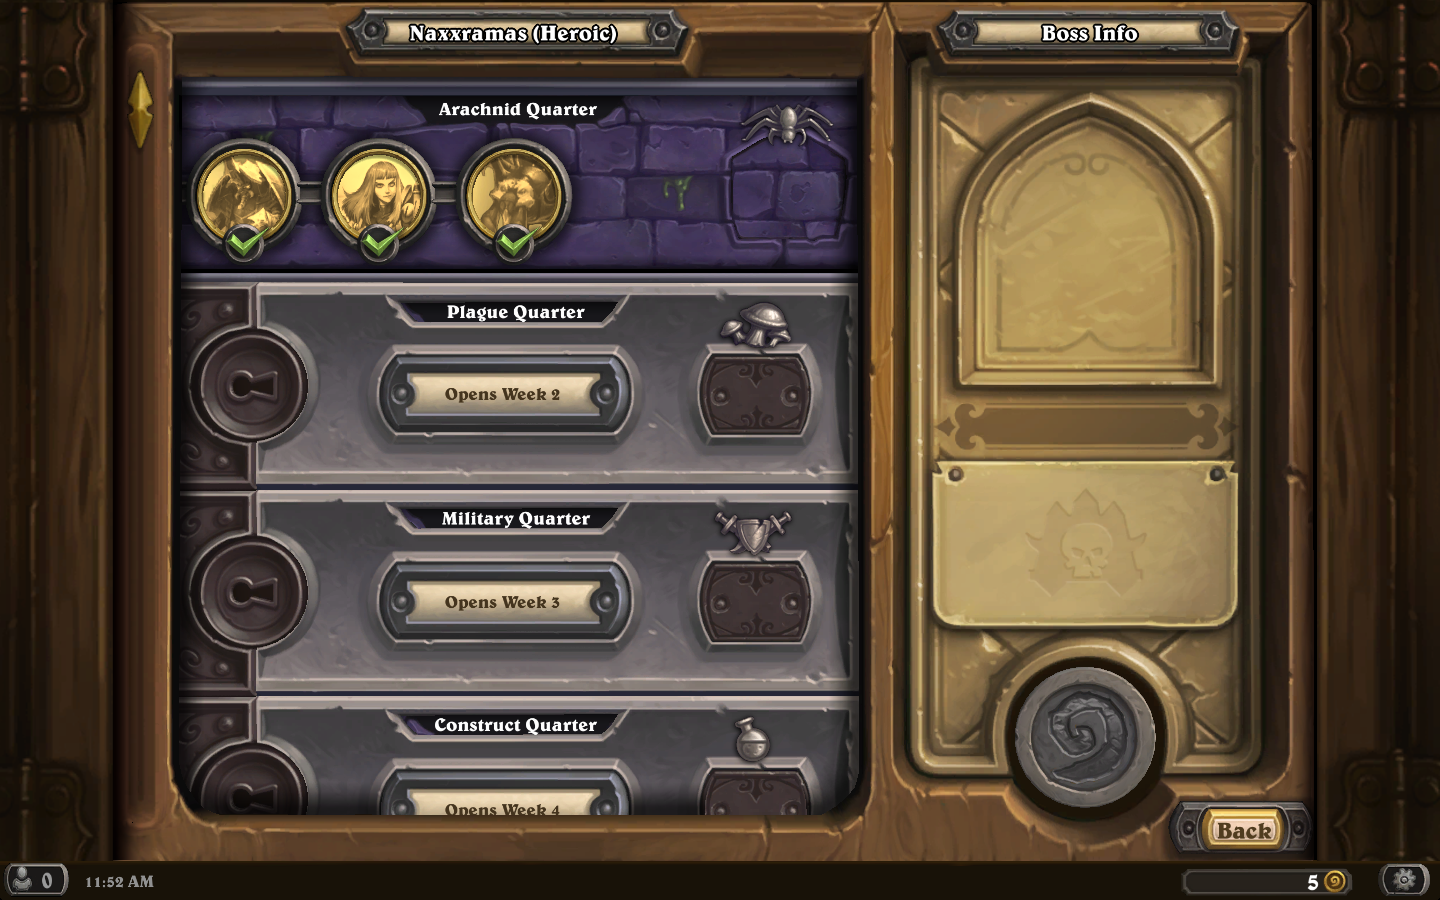 Blizzard Hearthstone Curse of Naxxramas all challenges complete